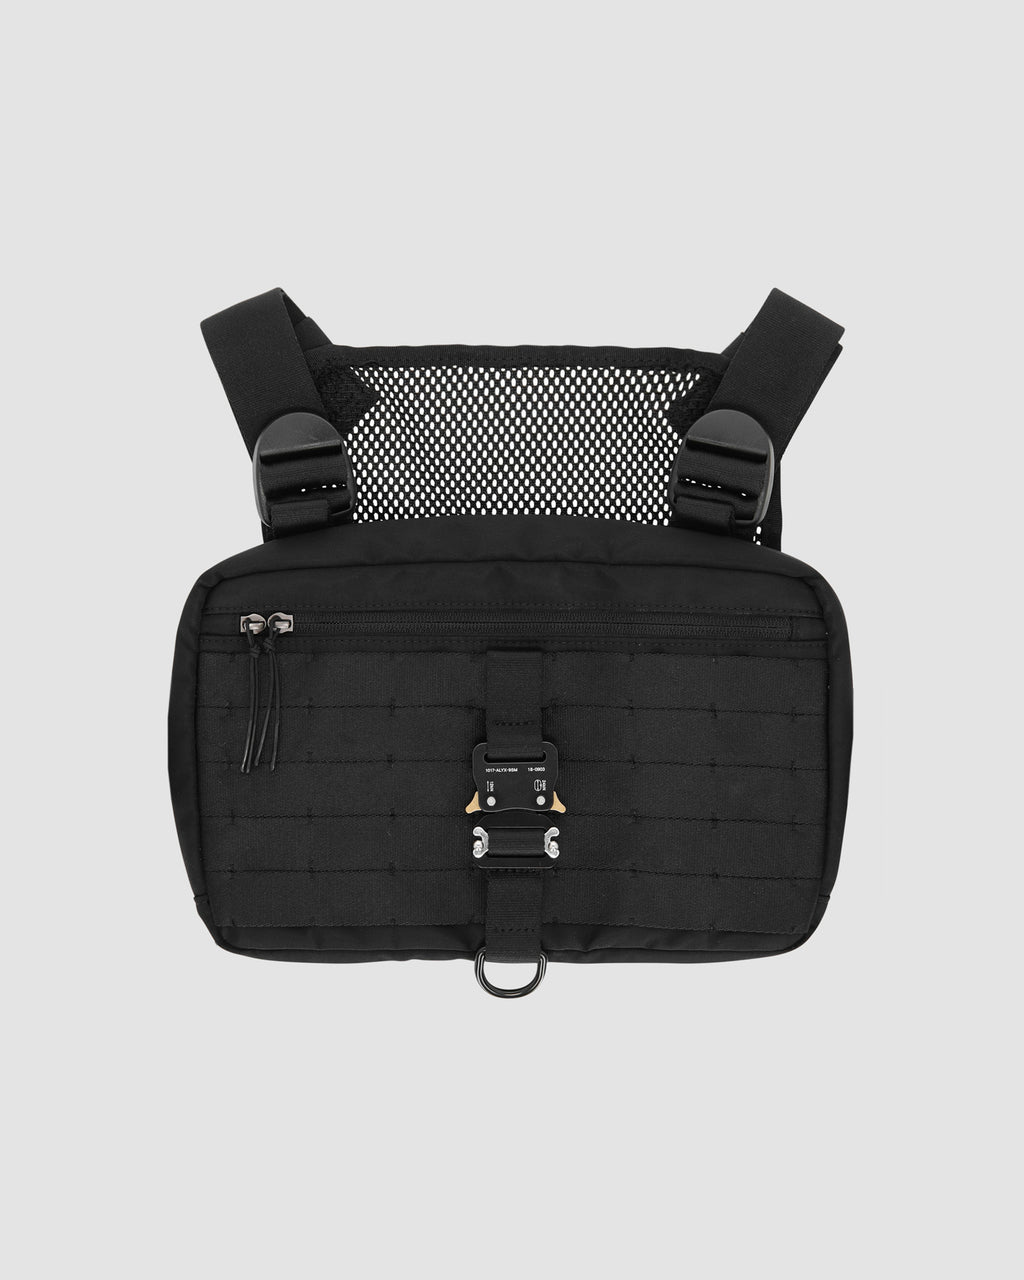 1017 ALYX 9SM | NEW CHEST RIG | Chest Rig | Bags, BLACK, CHEST BAGS, CHEST RIG, Man, S20, S20 Drop II, UNISEX, Woman